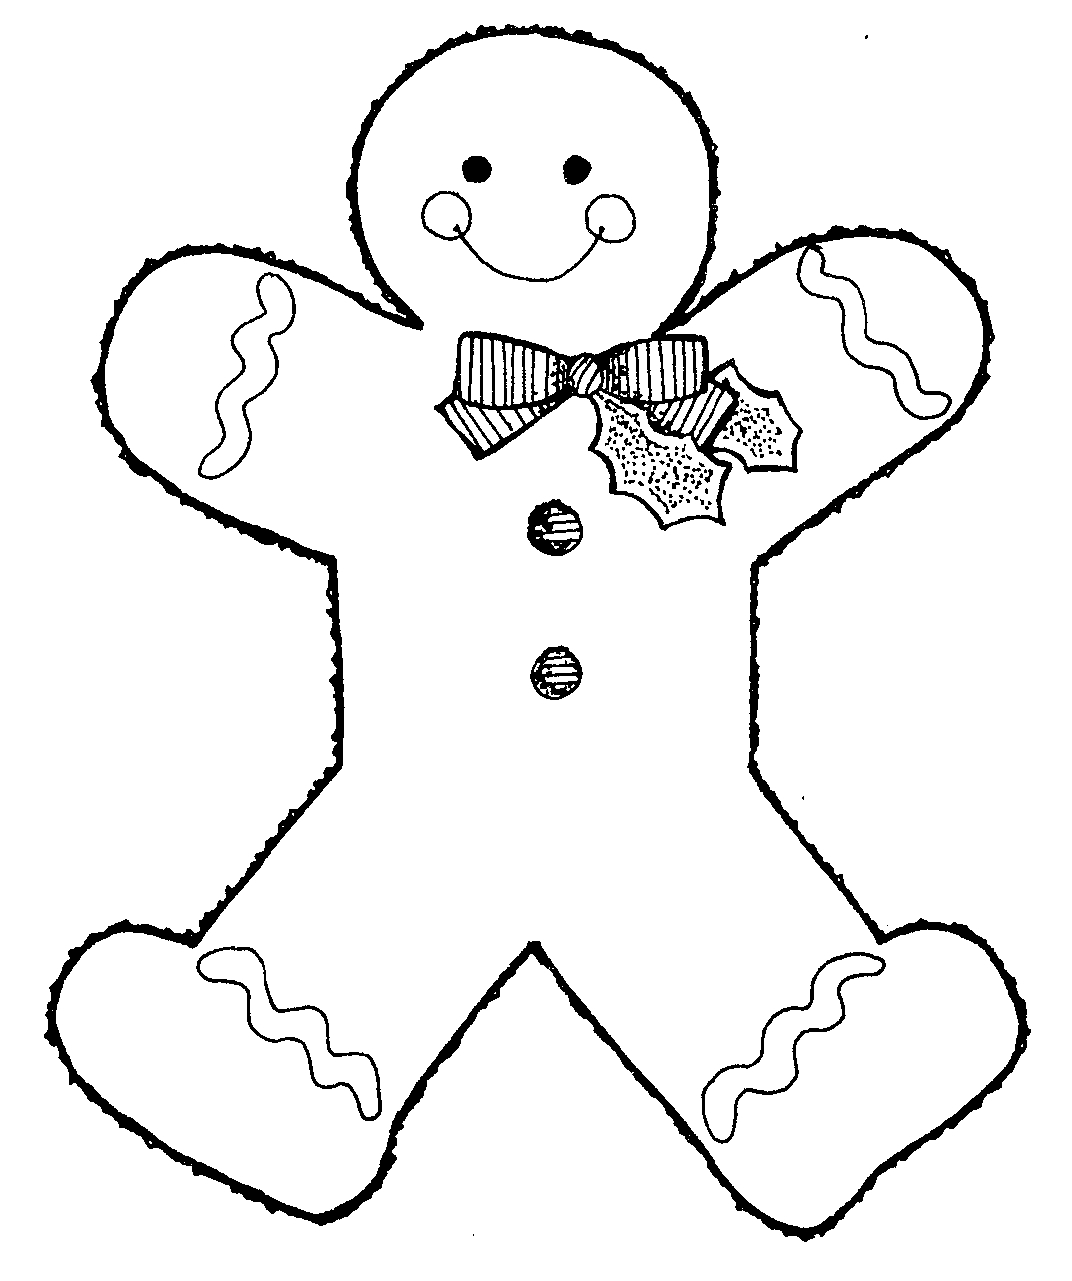 gingerbread man outline zine mama december 2013 outline gingerbread man